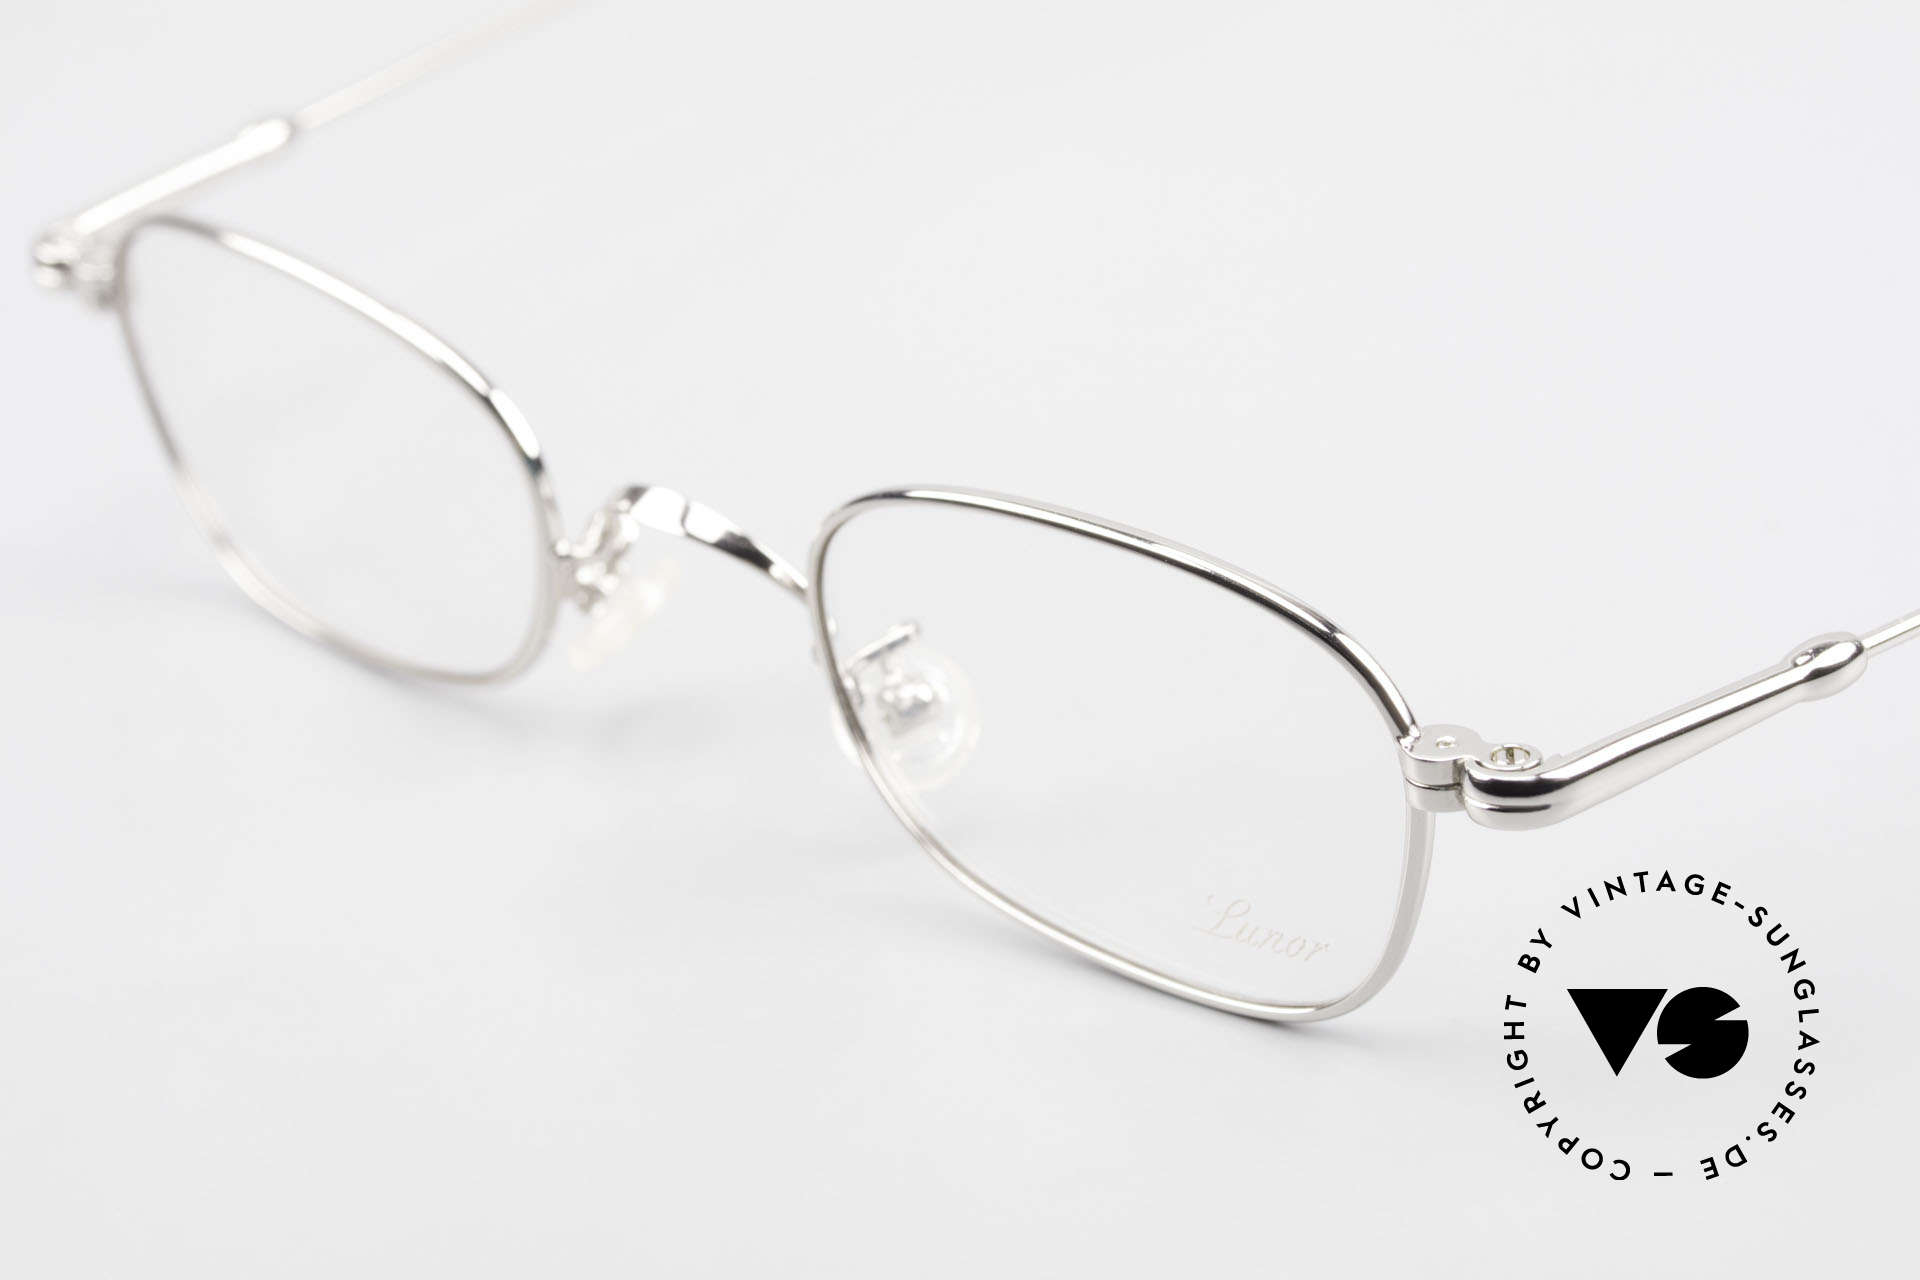 Lunor V 106 Full Metal Frame Platinum, from the 2011's collection, but in a well-known quality, Made for Men and Women